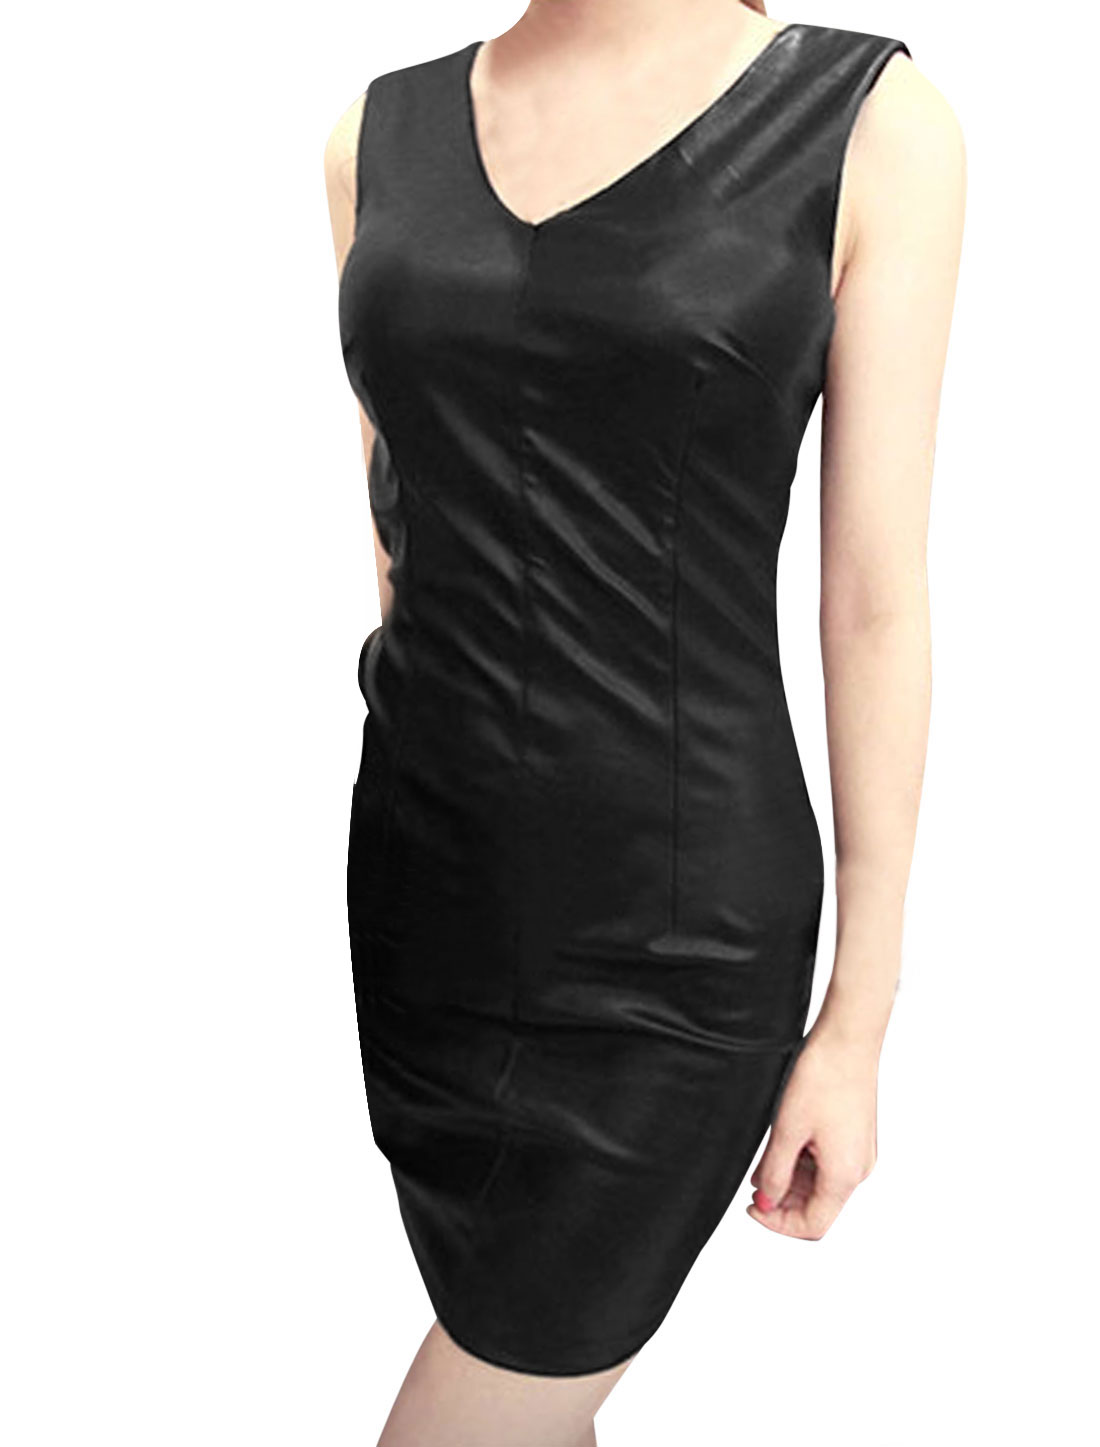 Women V Neck Sleeveless Pleated Detail Chic Imitation Leather Dress Black XS